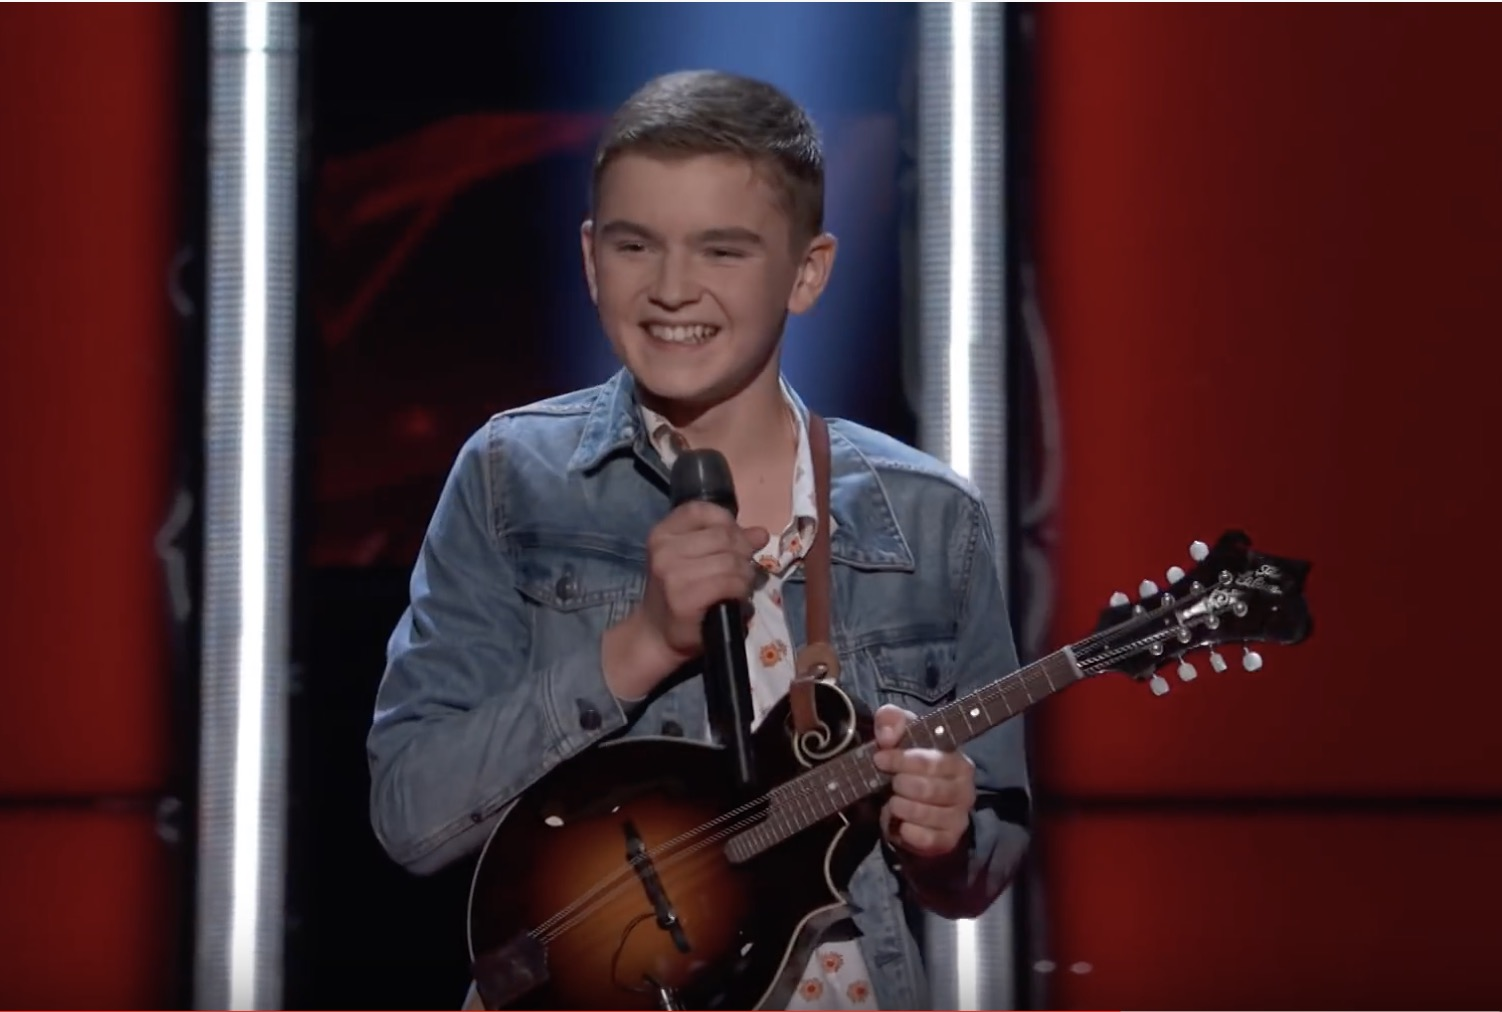 Wilson Hill Academy alumnus and The Voice contestant Levi Watkins